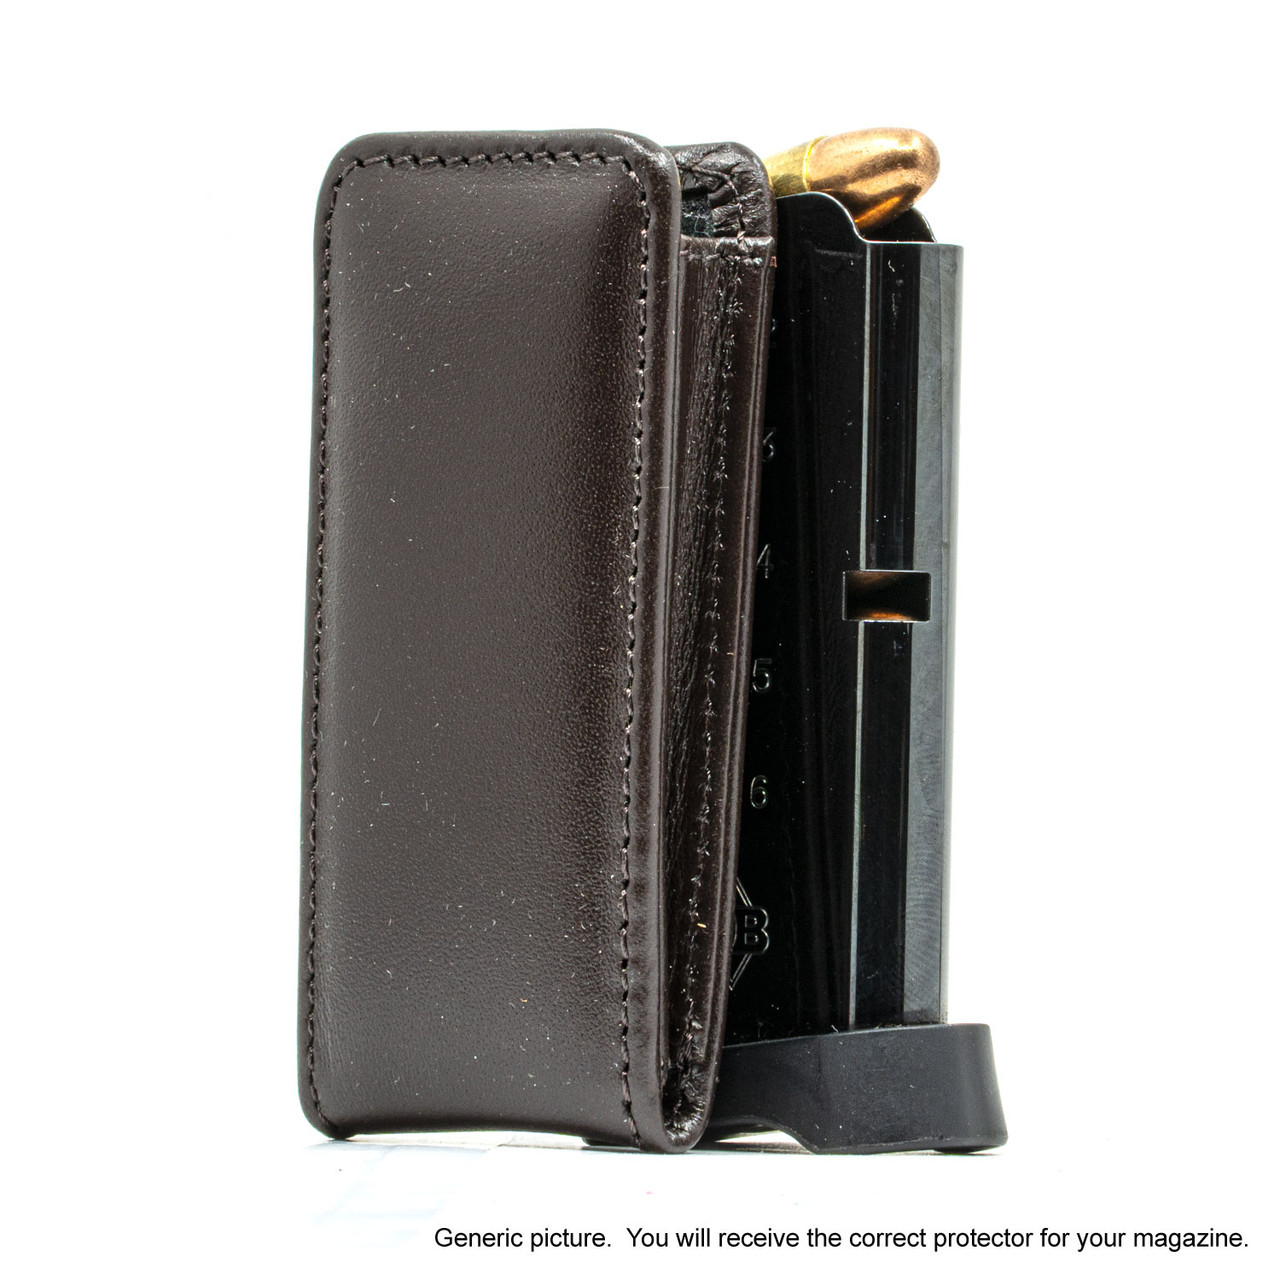 Kahr S9 Brown Leather Magazine Pocket Protector